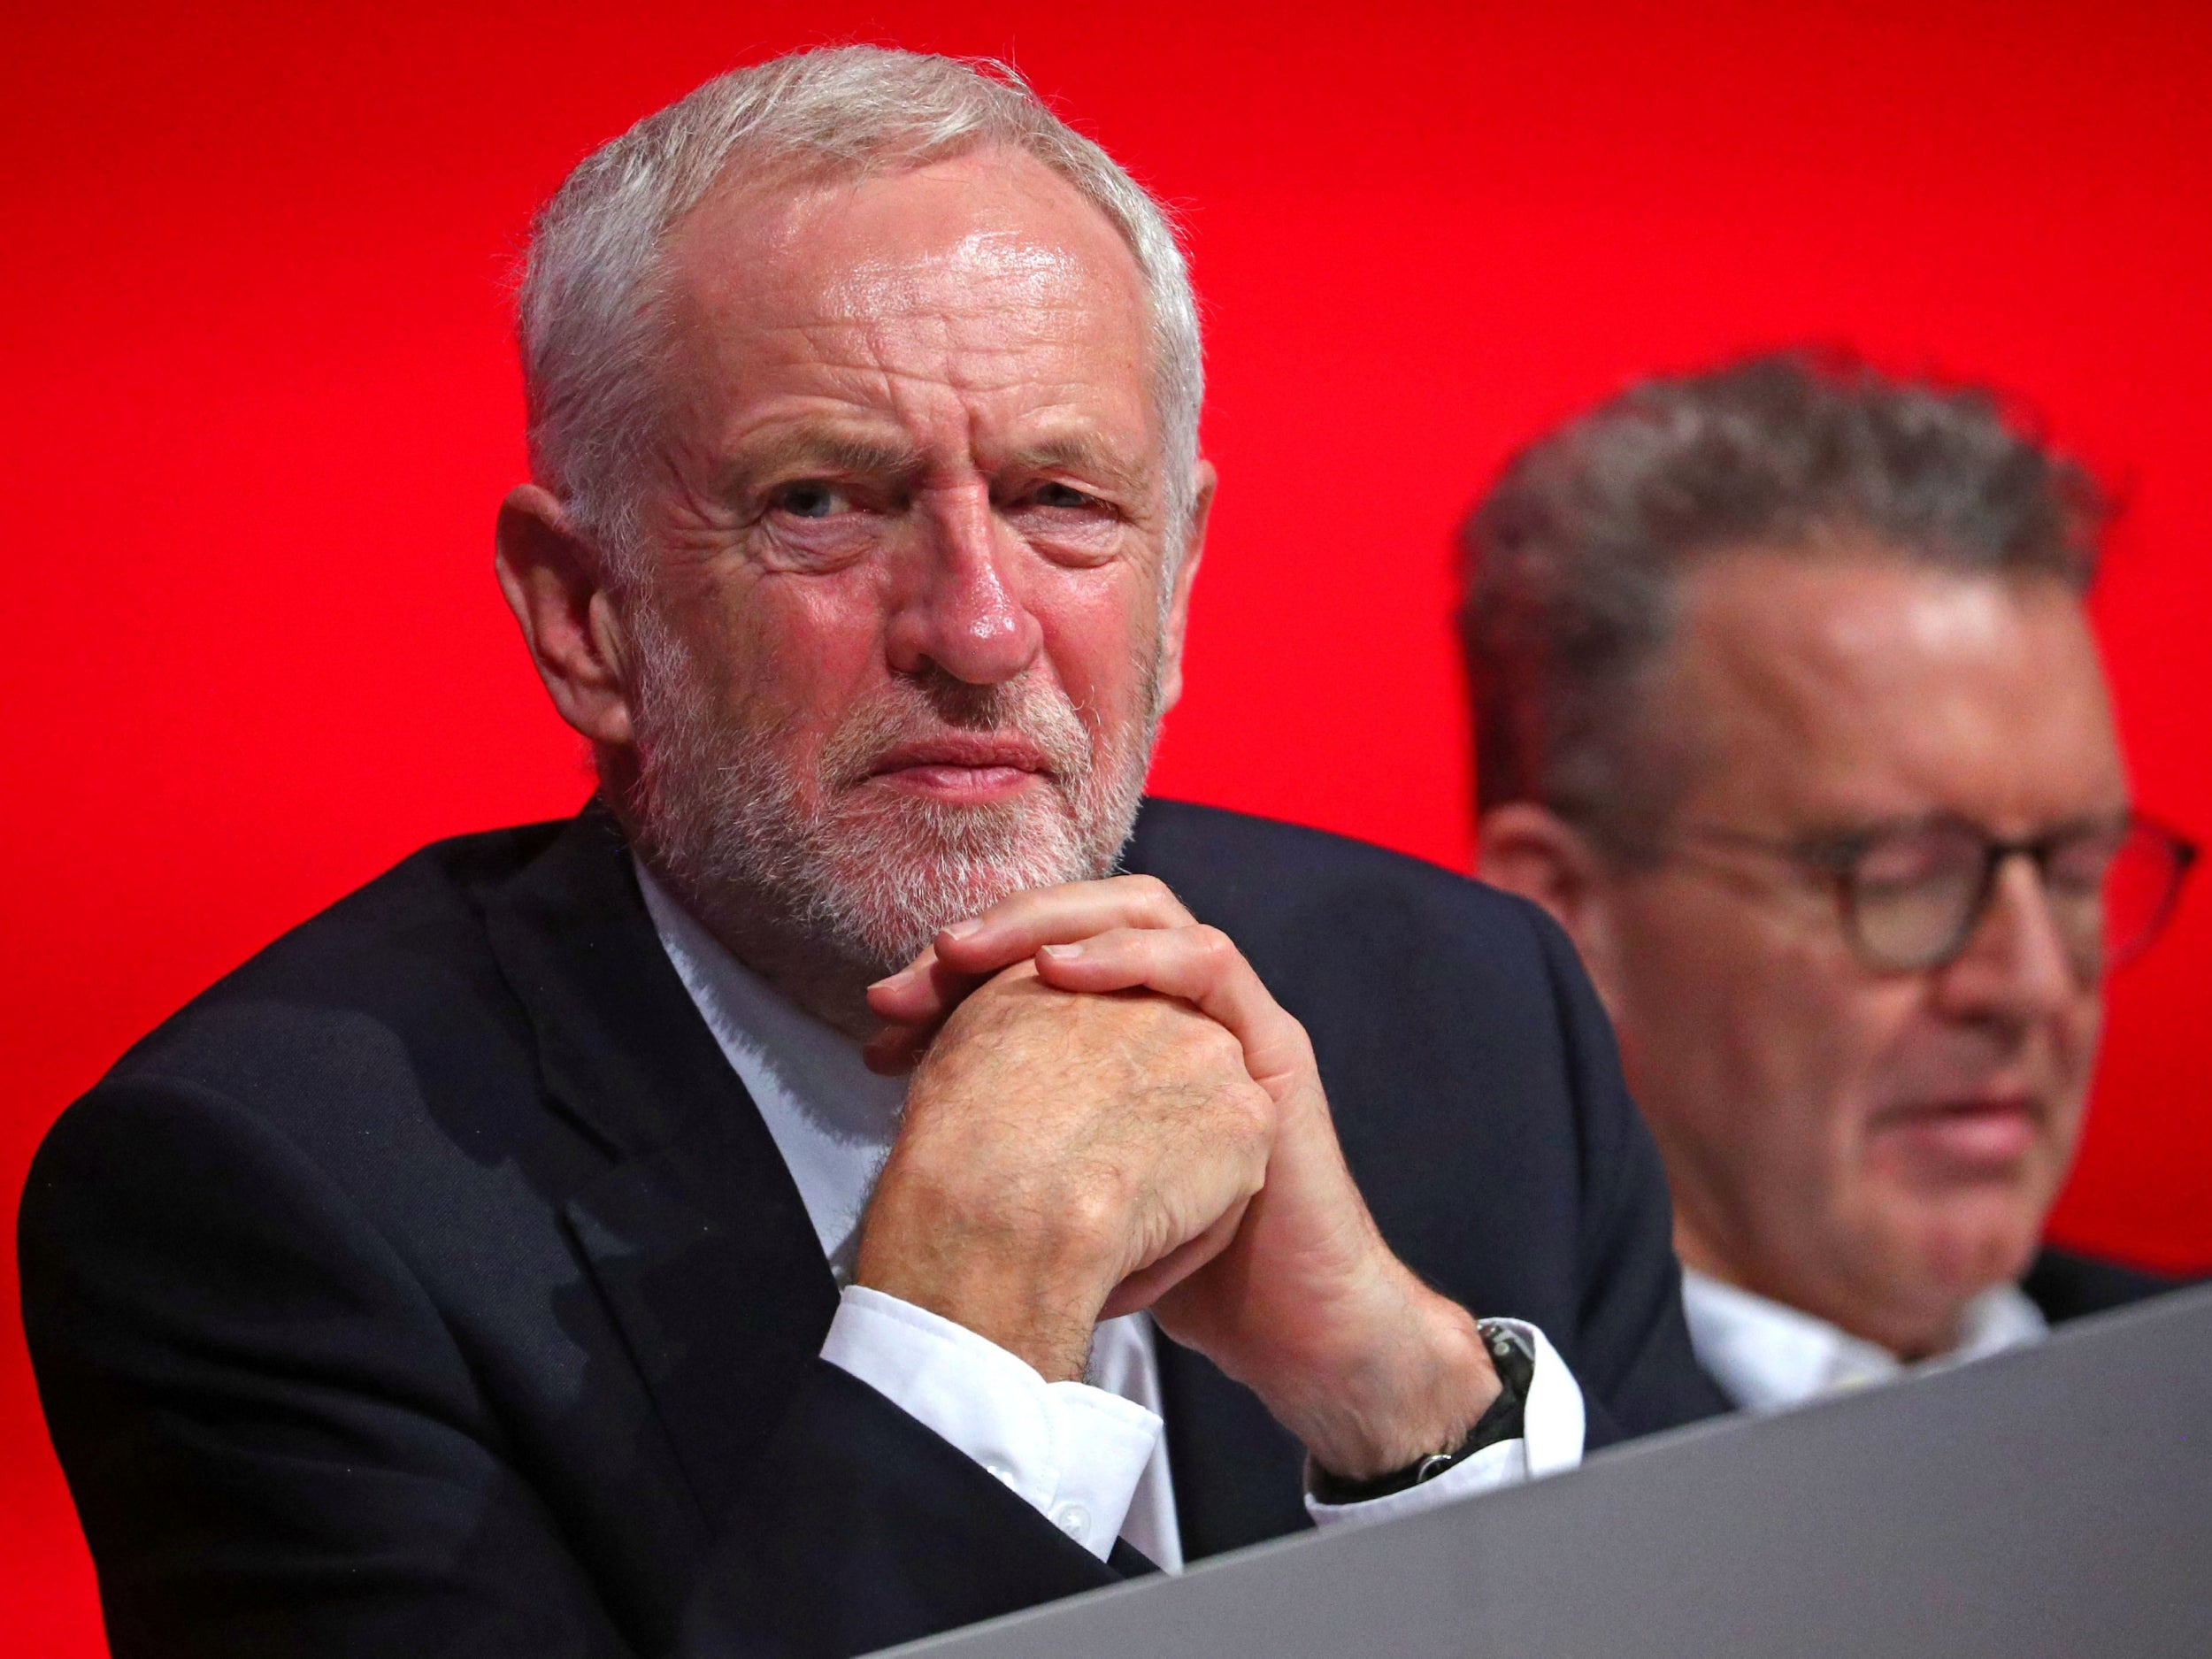 This Labour Party row will not be settled by relying on a flawed and faulty definition of antisemitism